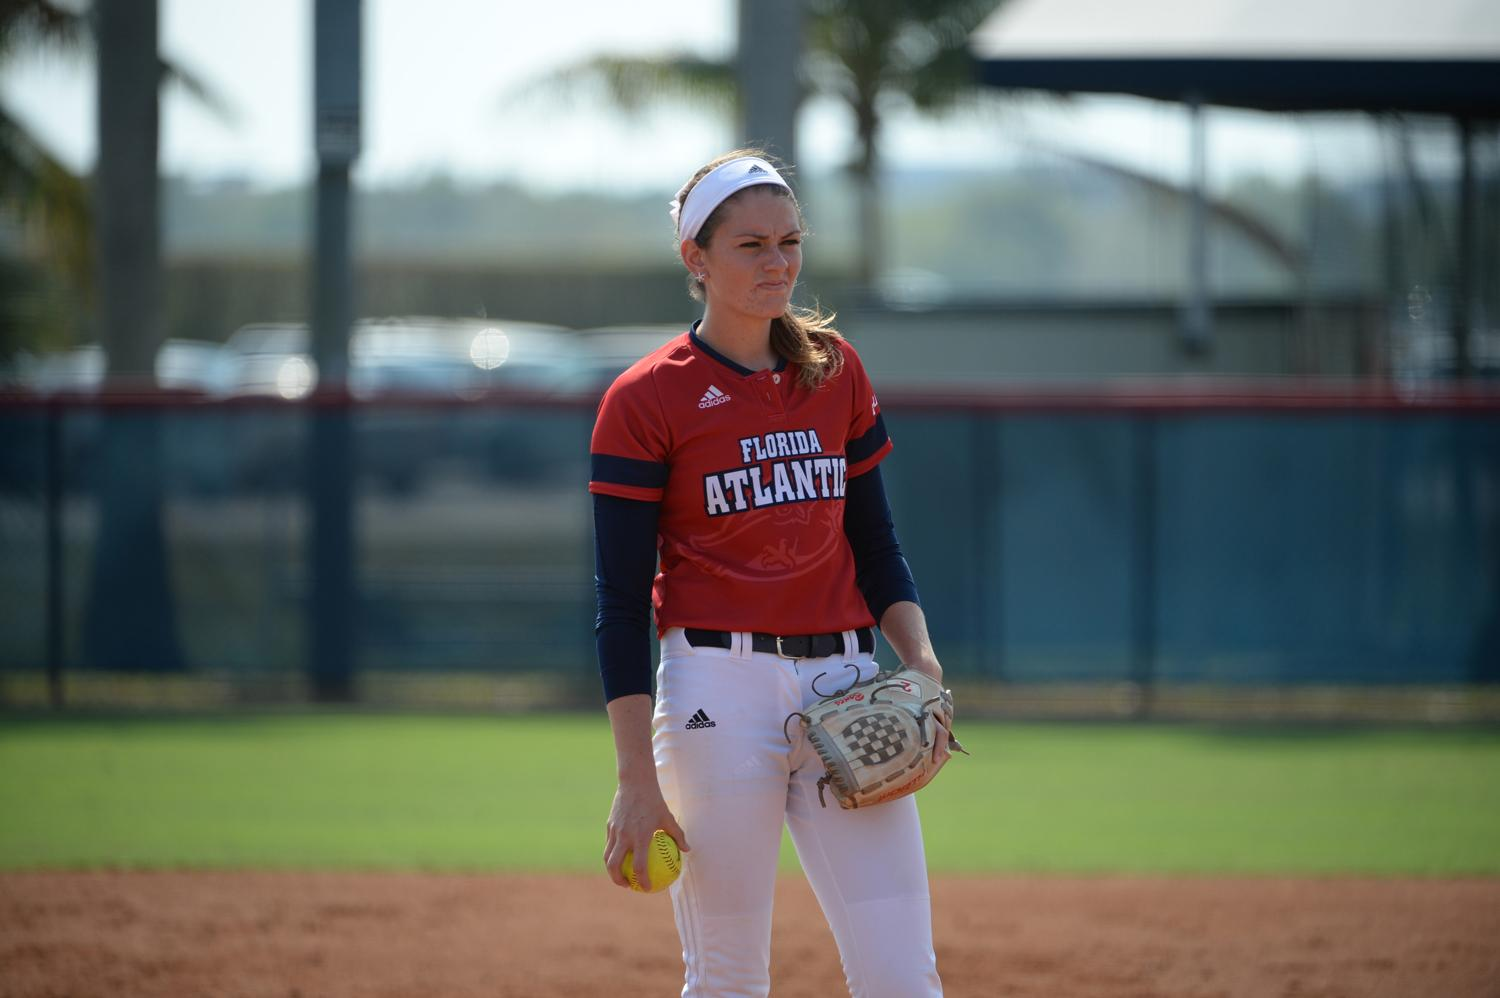 Kylee Hanson stares down the plate before delivering a pitch last season. Photo courtesy of FAU Athletics